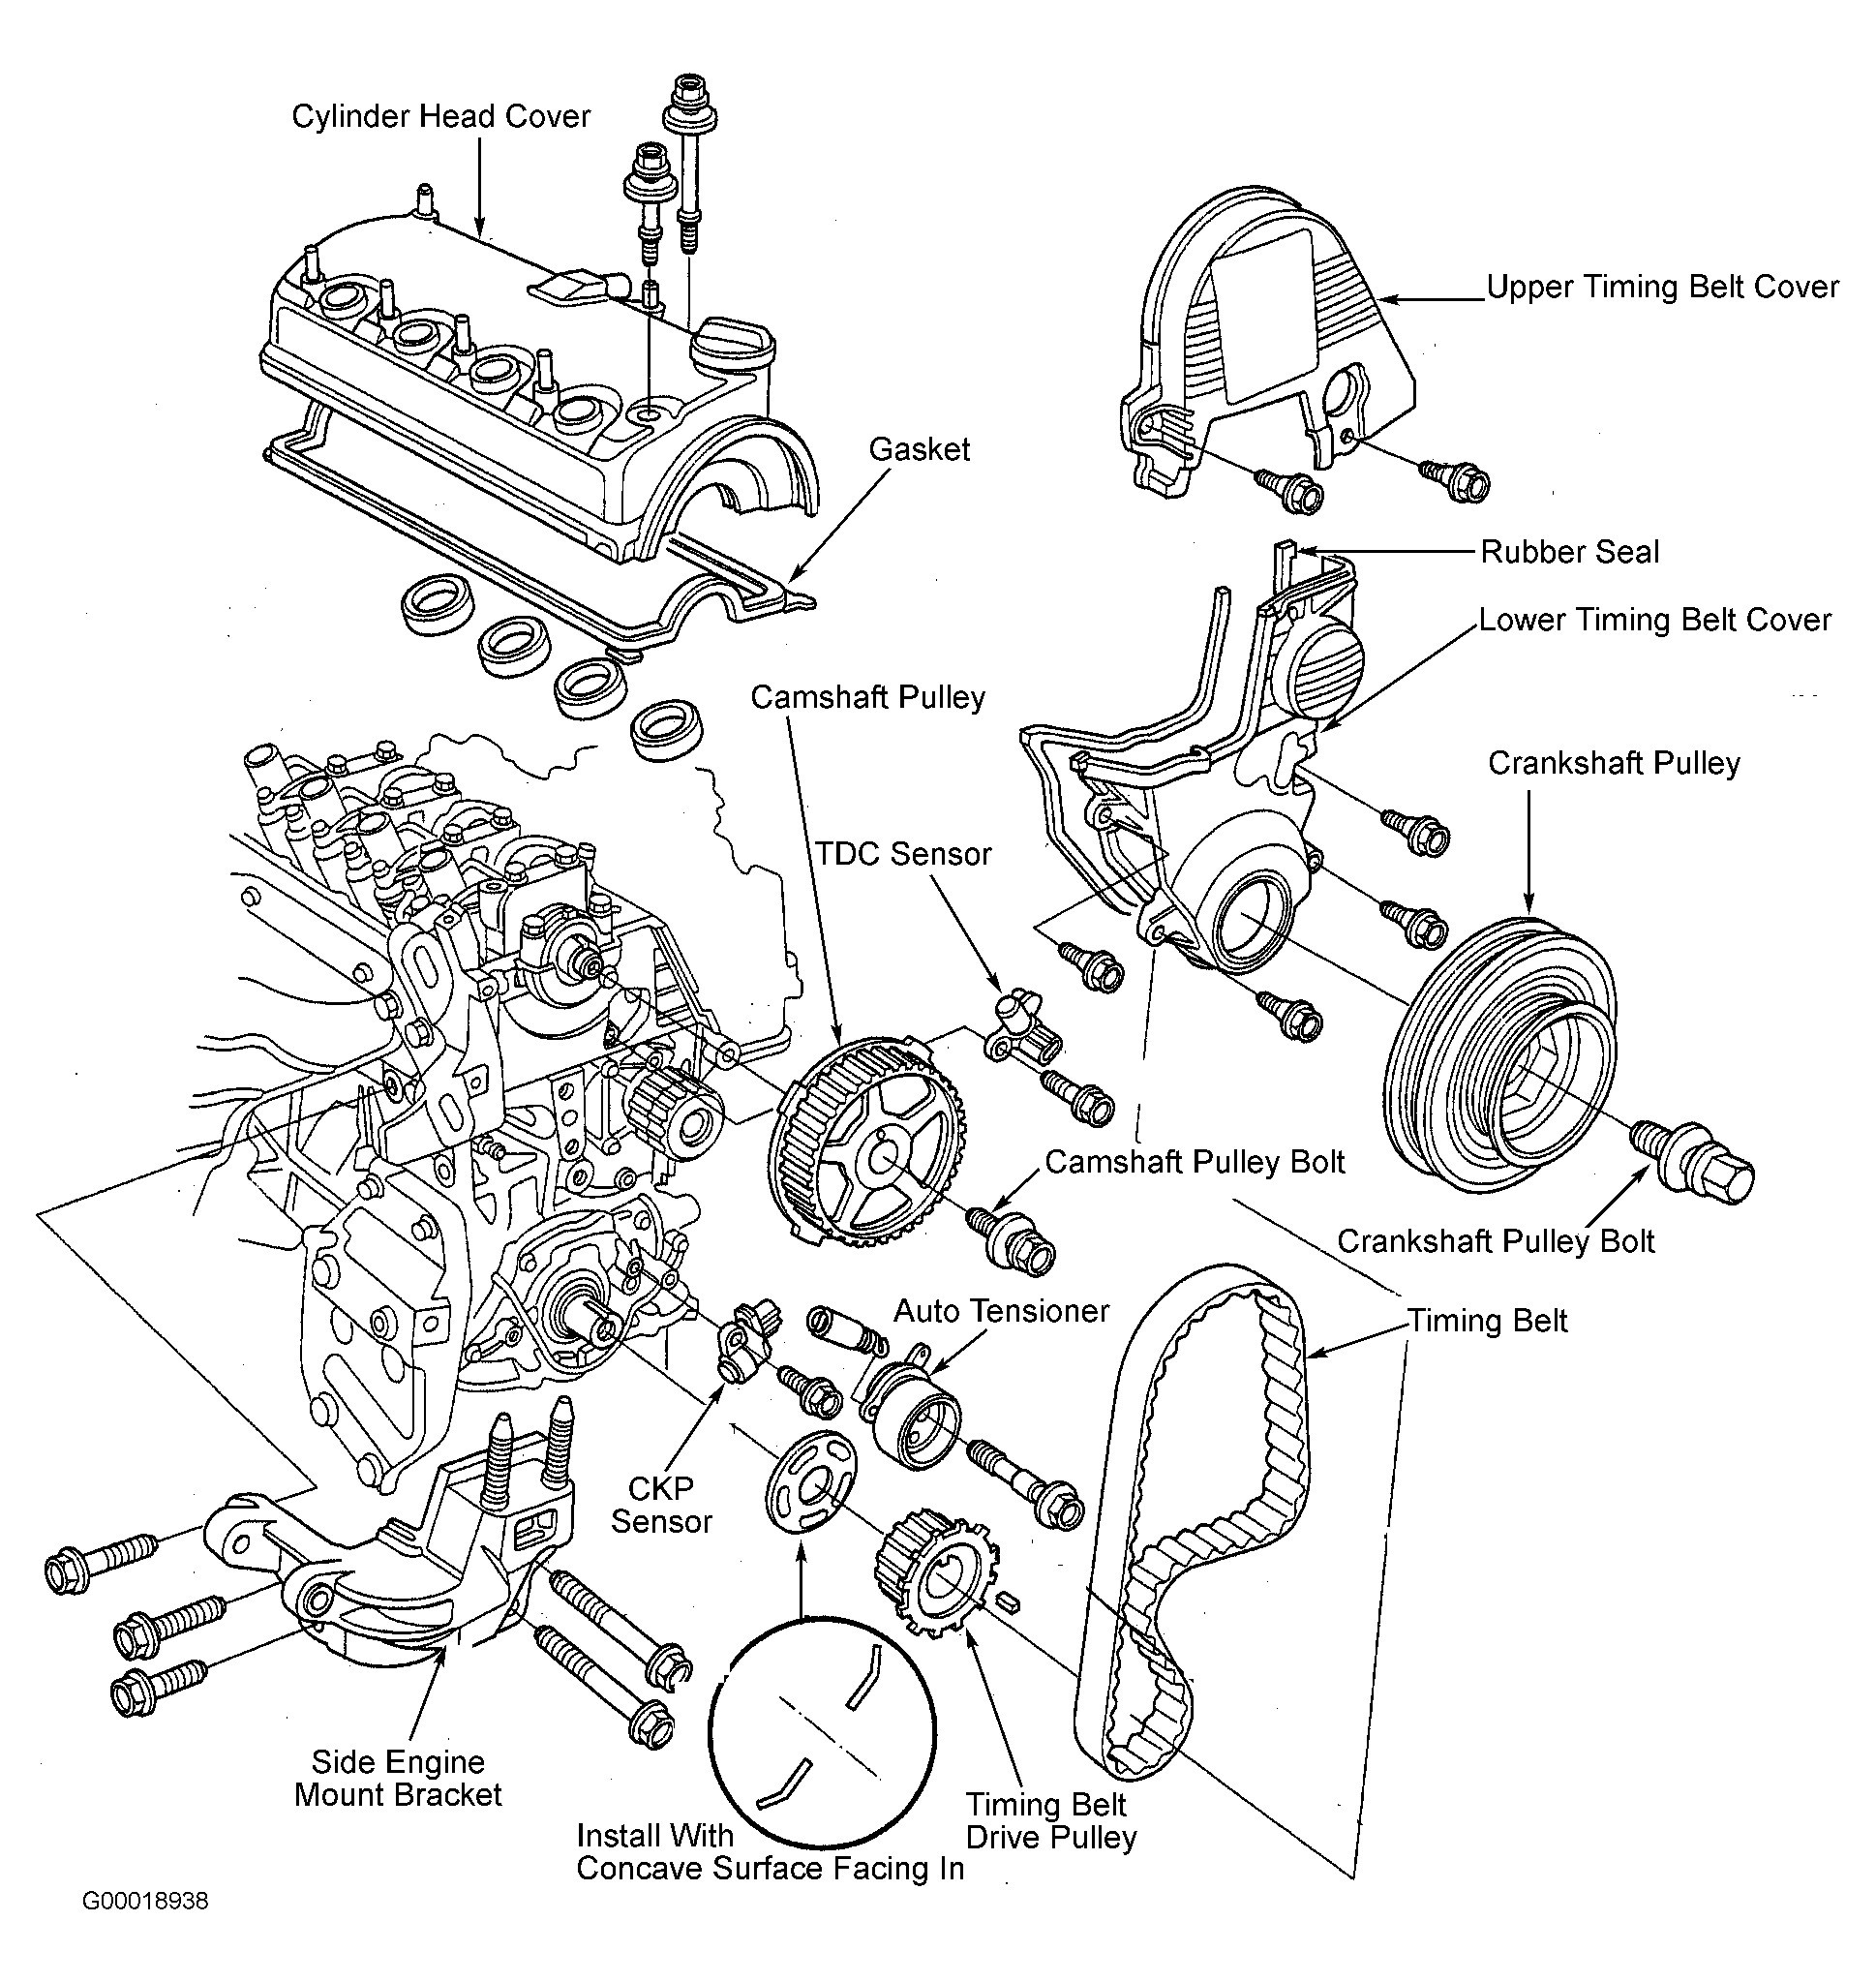 2003 Chevy Trailblazer Parts Diagram 2003 Trailblazer